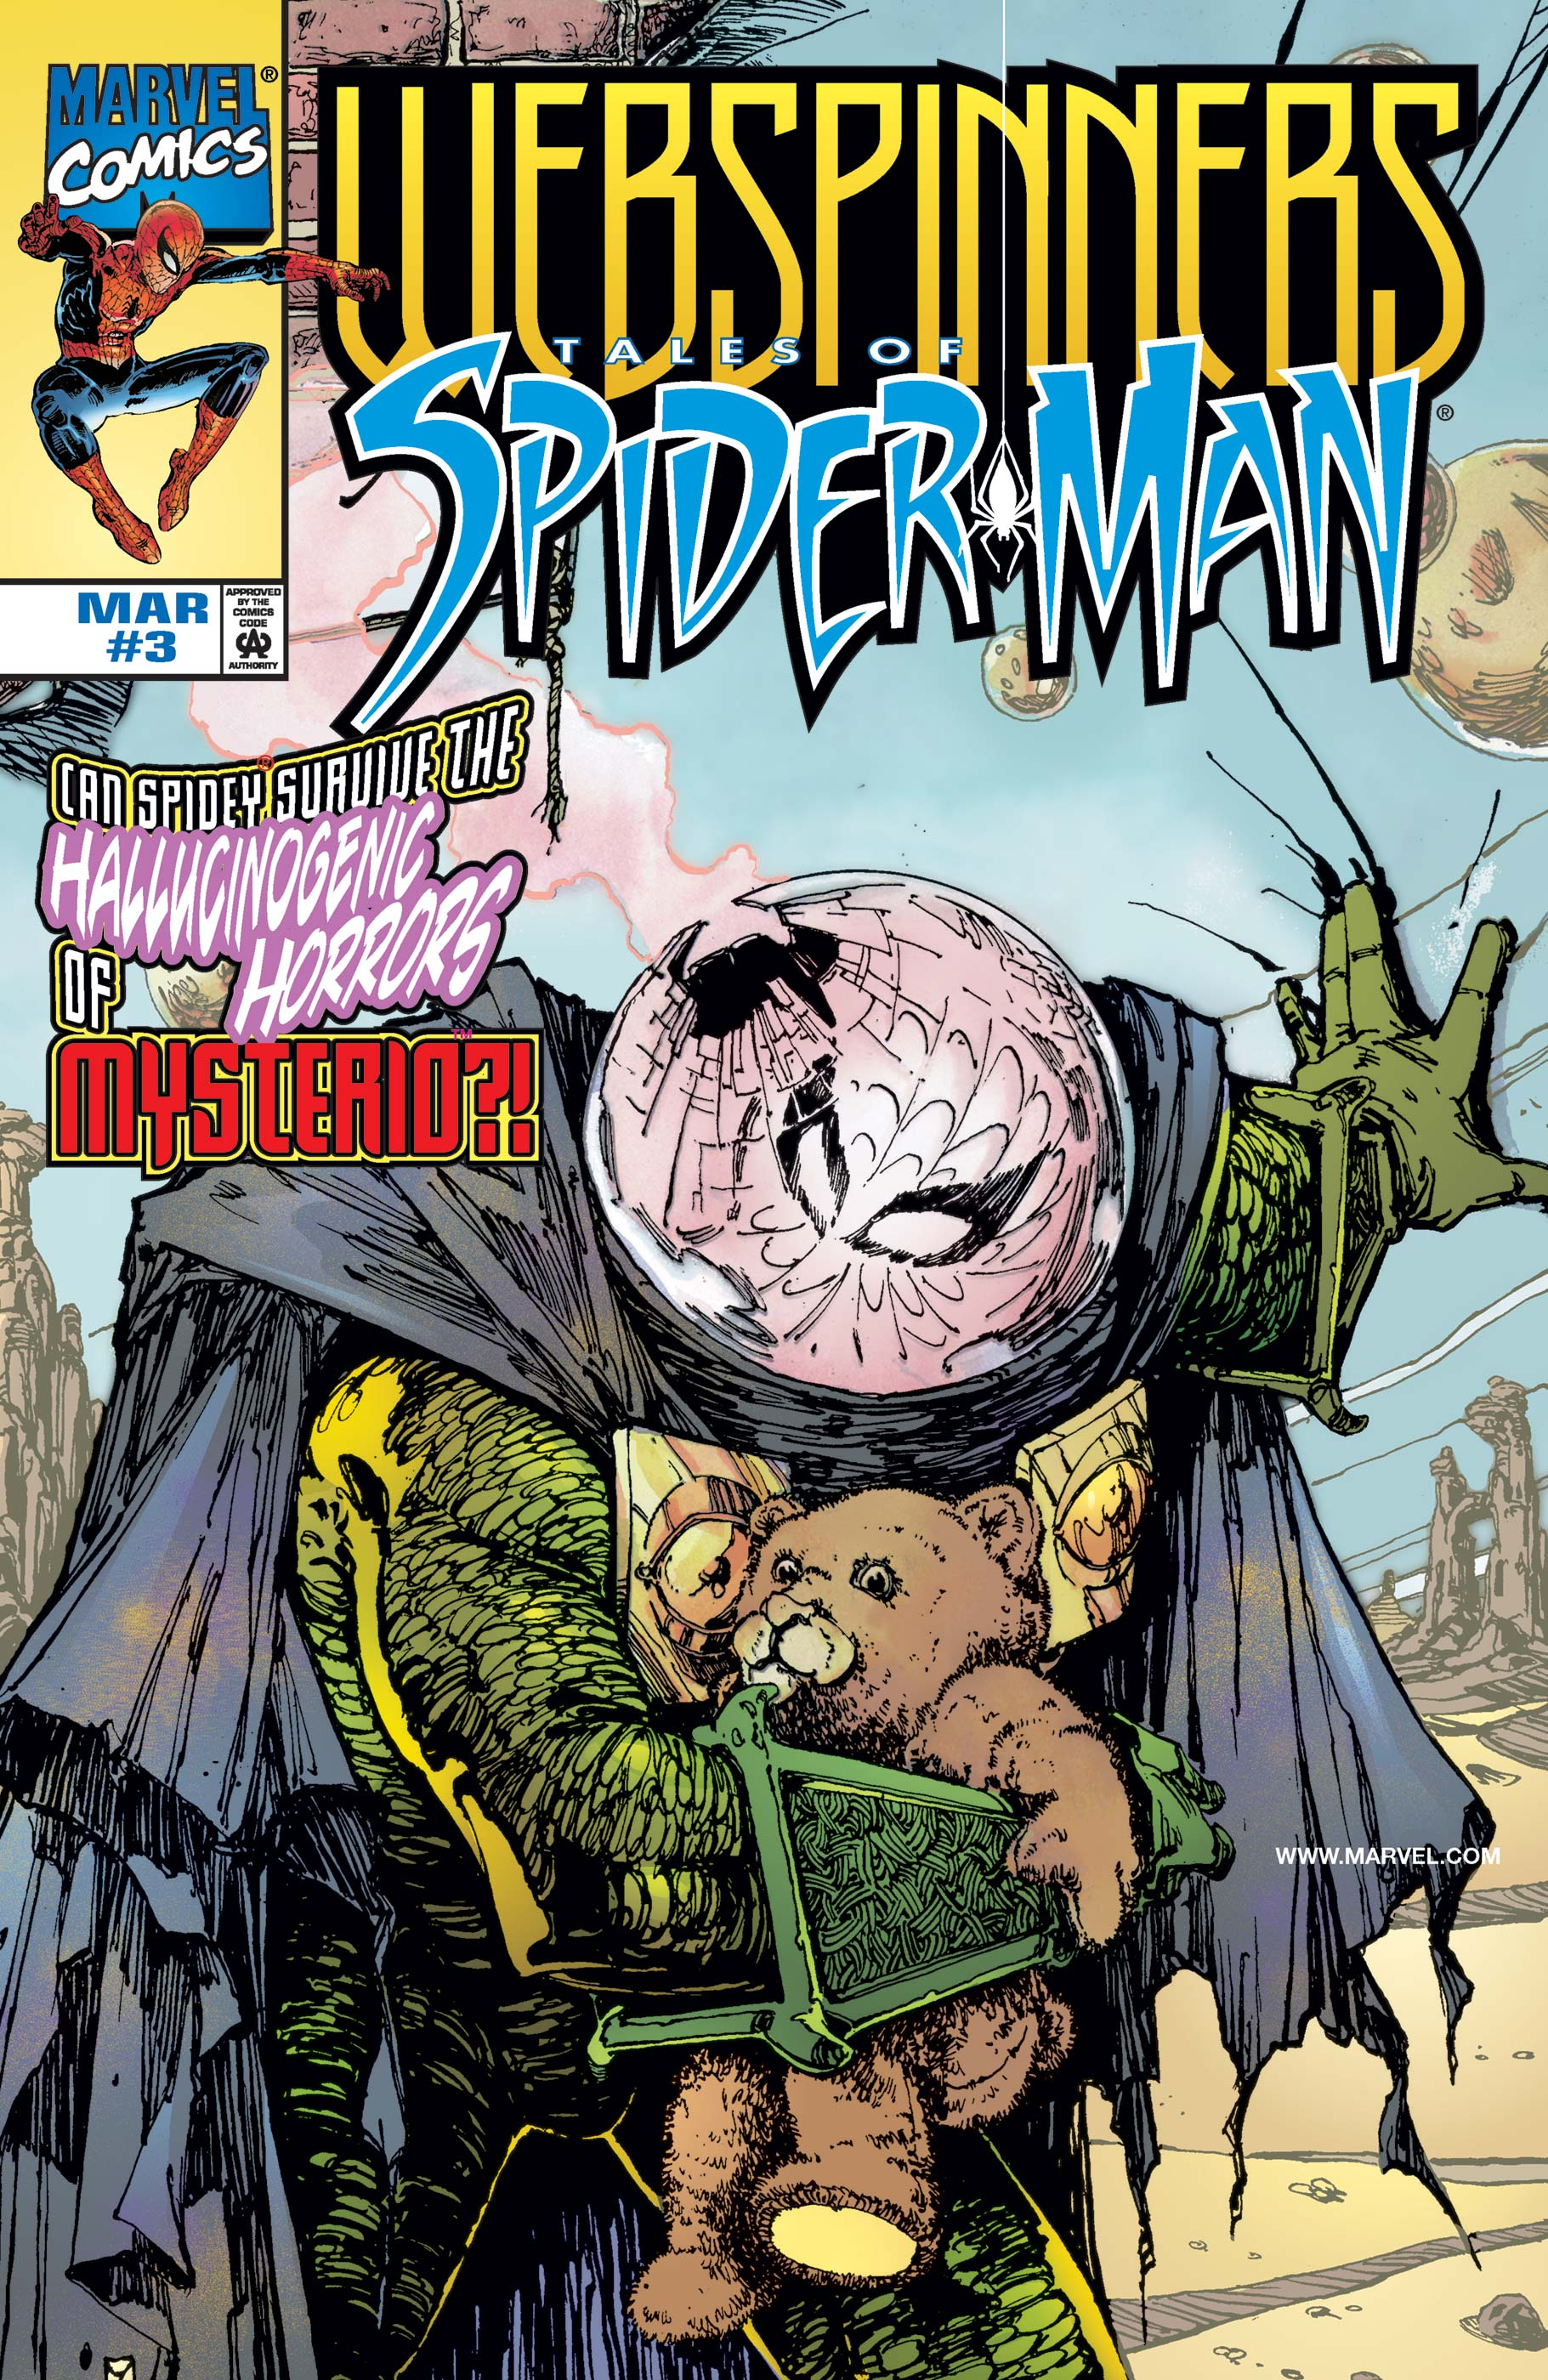 Webspinners: Tales of Spider-Man (1999) #3